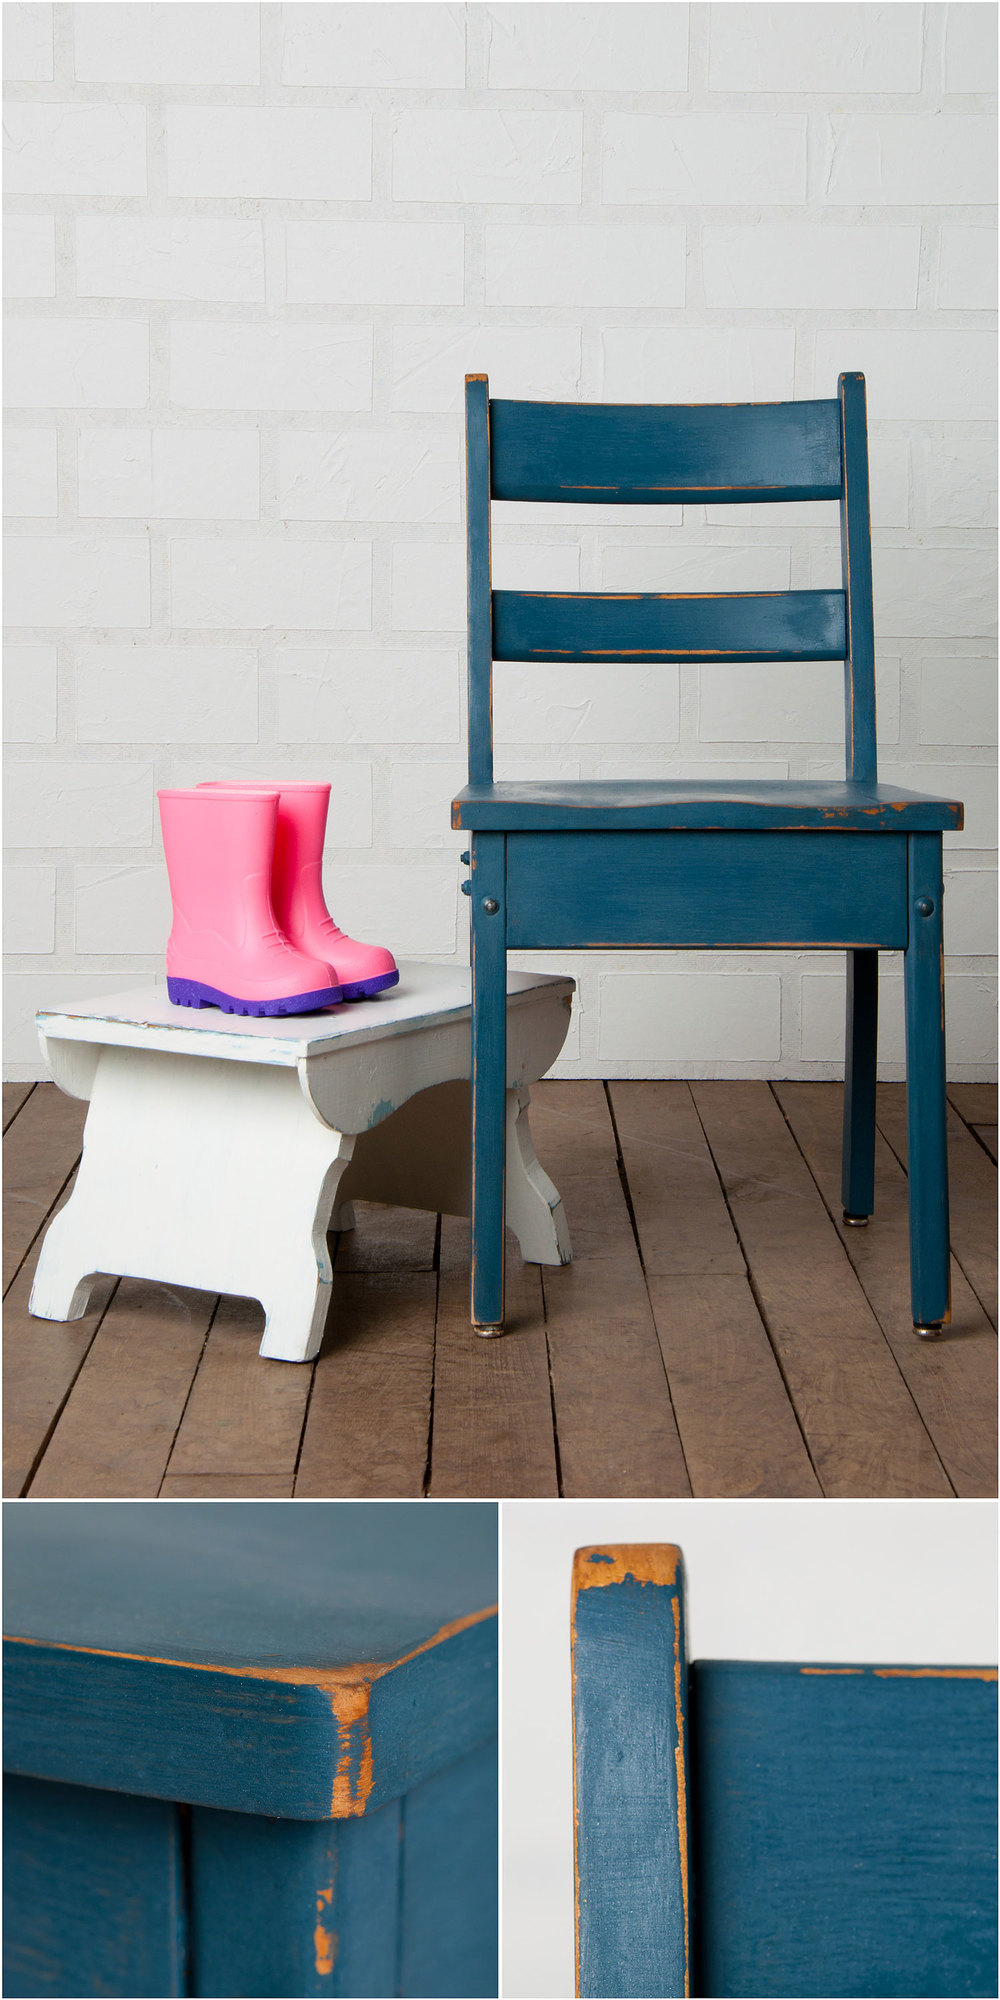 Chair painted in denim and stool painted in flour sack - Sweet Pickins milk paint - via My Painted Door (.com)